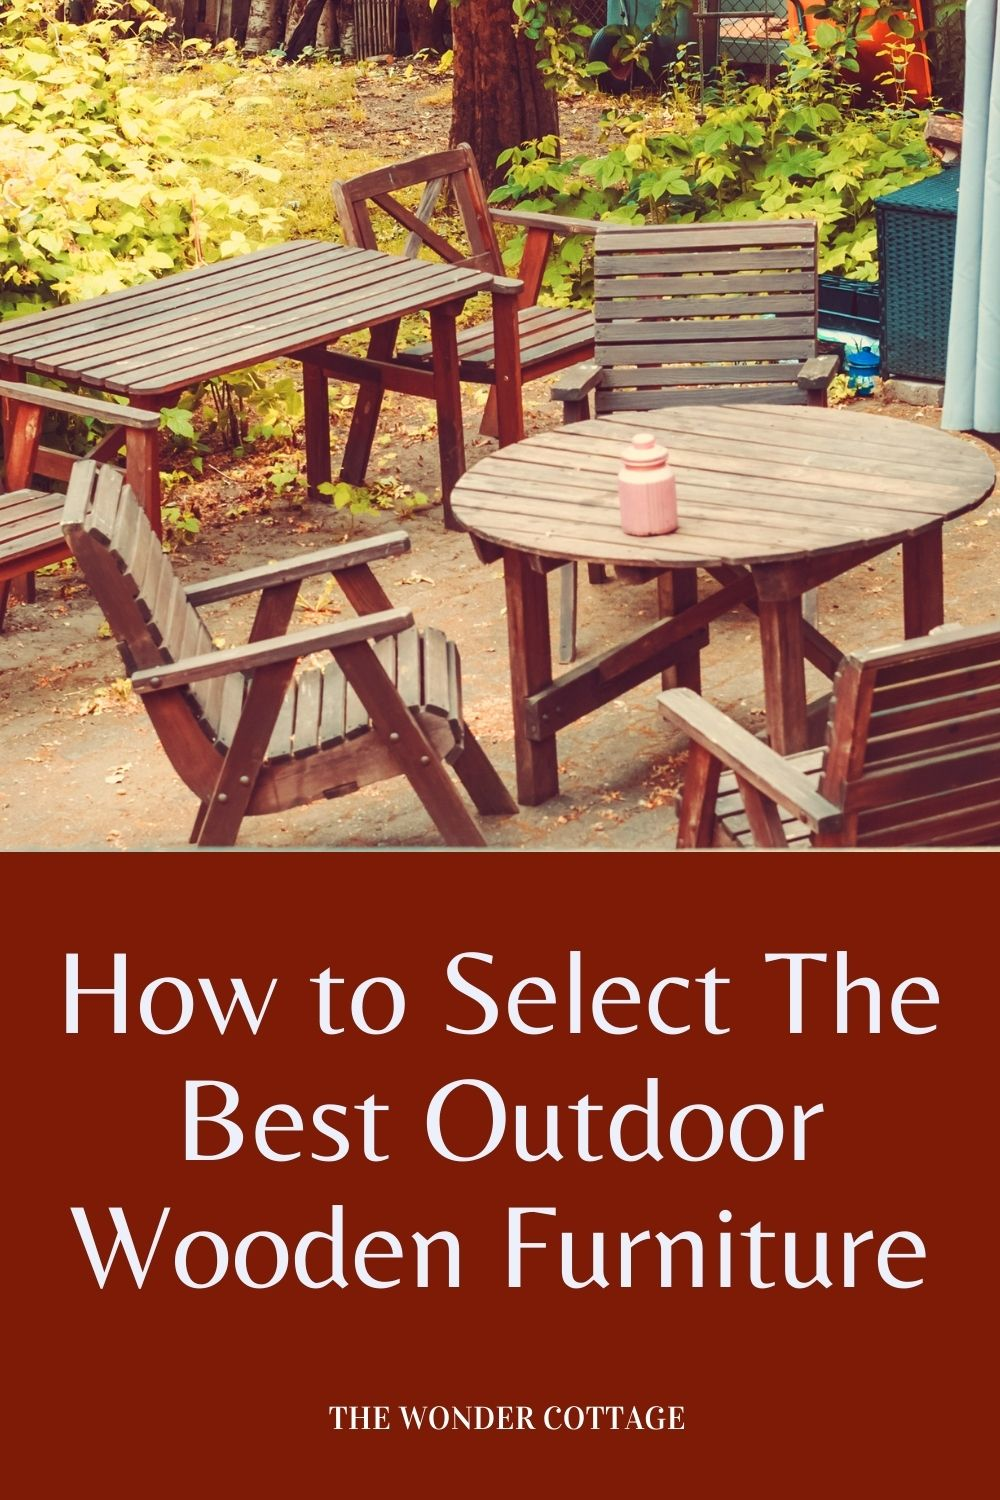 how to select the best outdoor wooden furniture